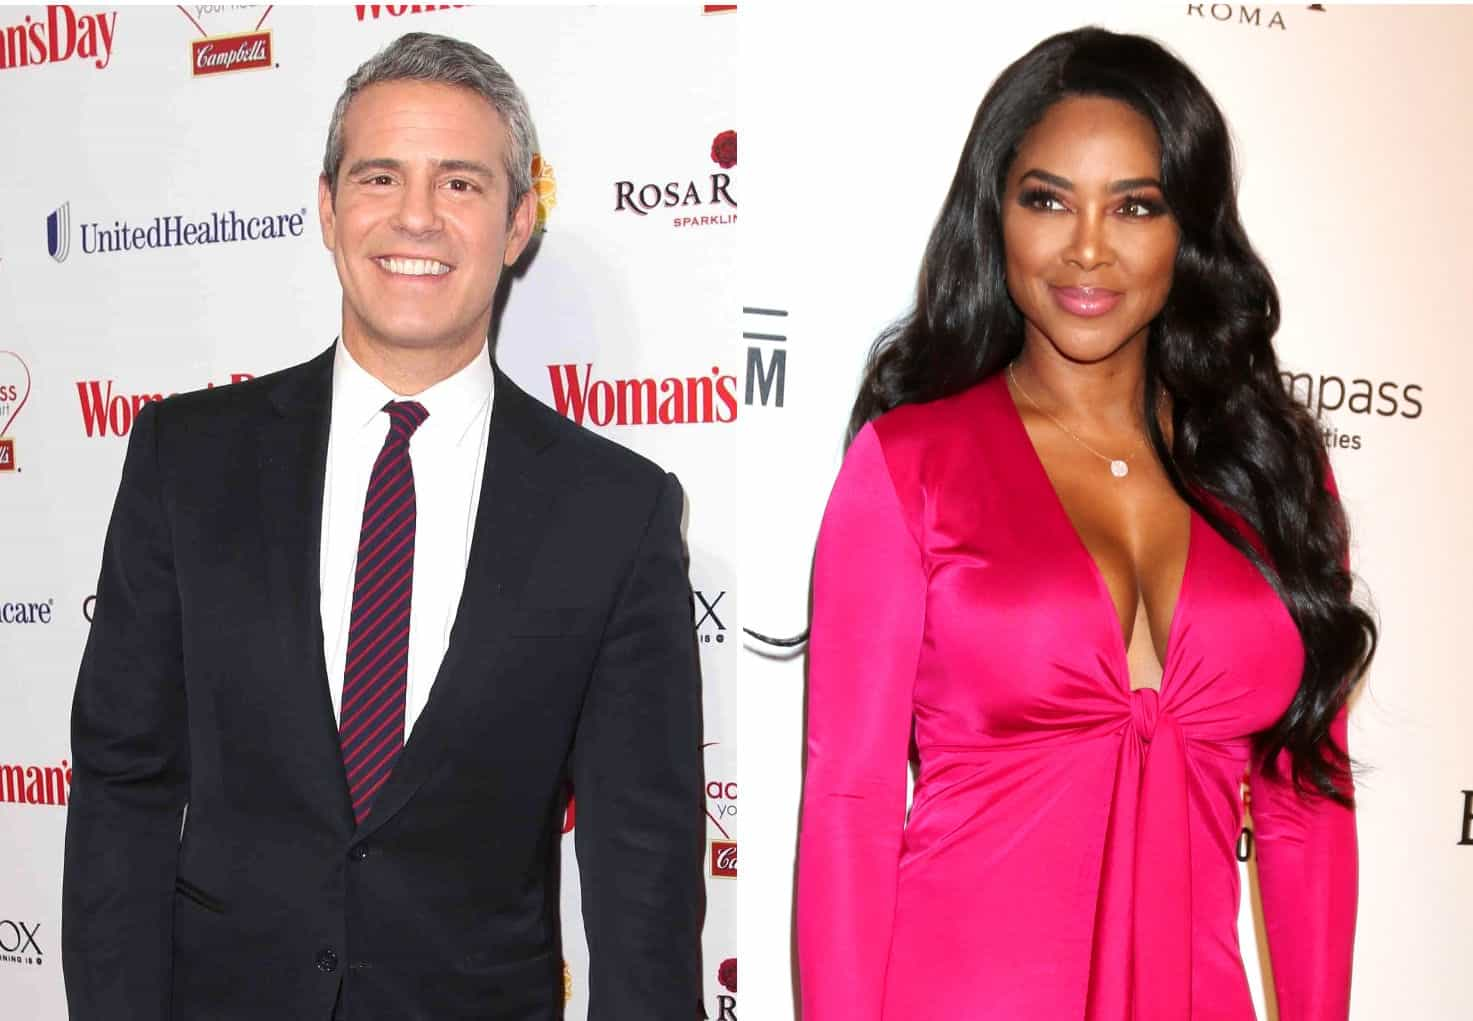 RHOA Andy Cohen and Kenya Moore